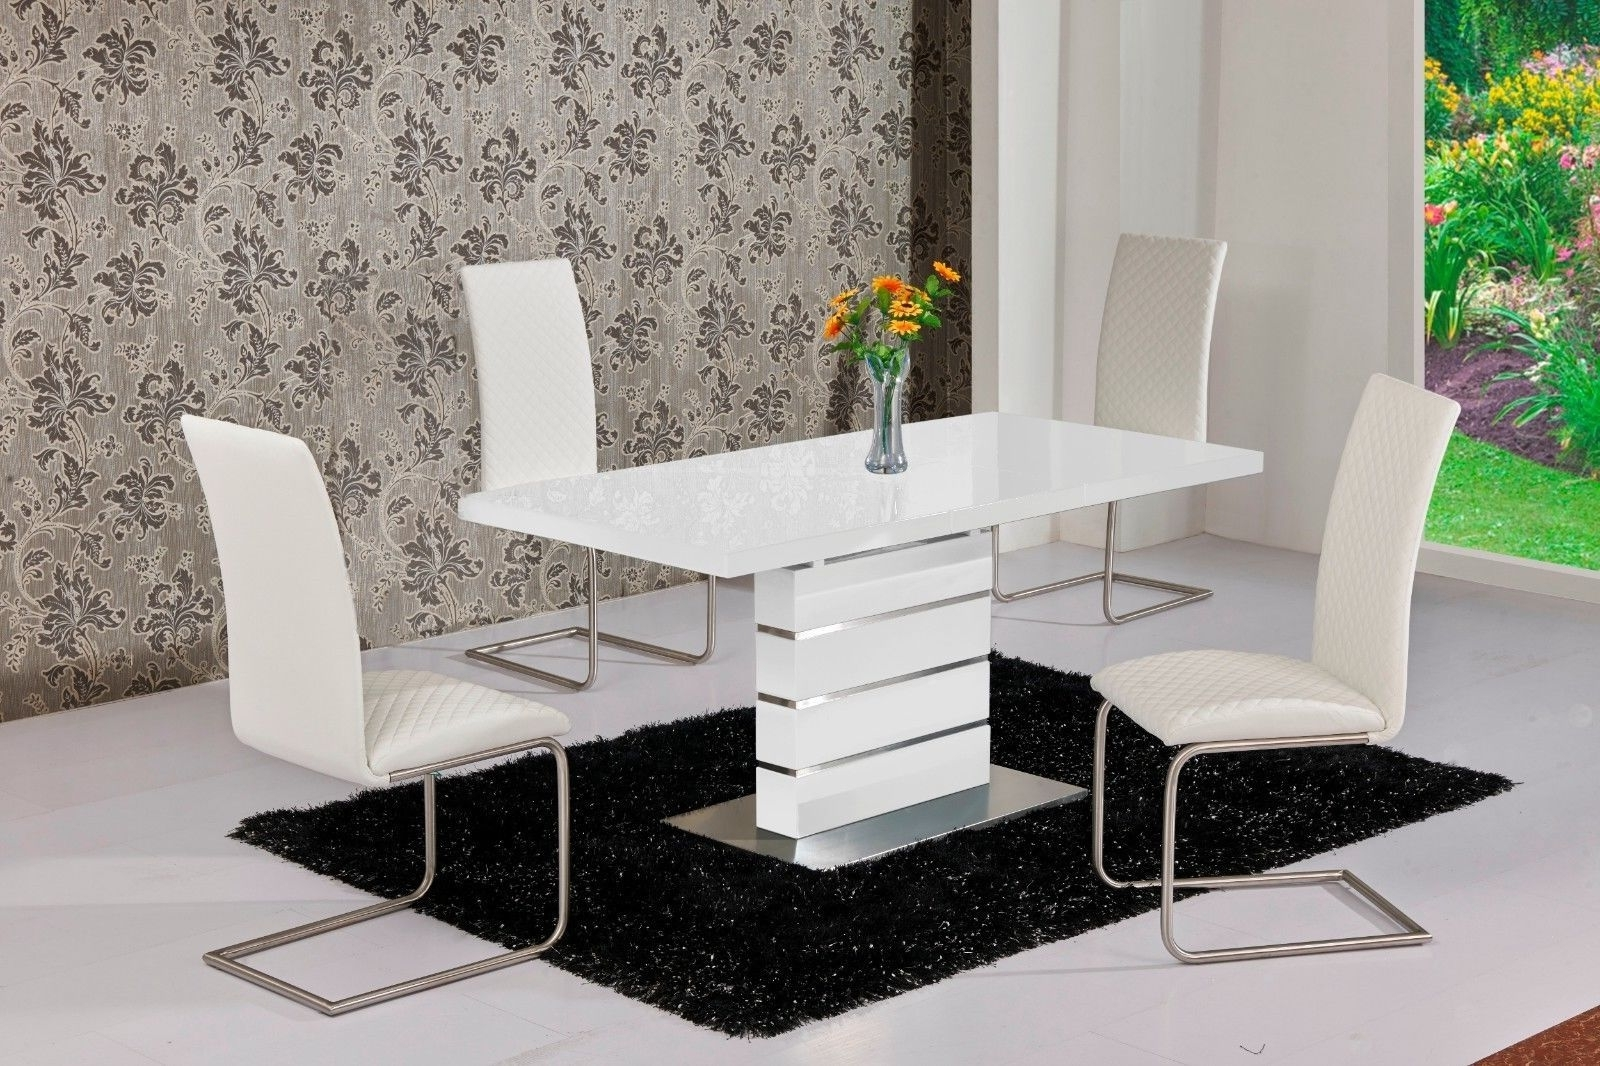 Famous Mace High Gloss Extending 120 160 Dining Table & Chair Set – White Inside High Gloss Dining Tables (View 3 of 25)